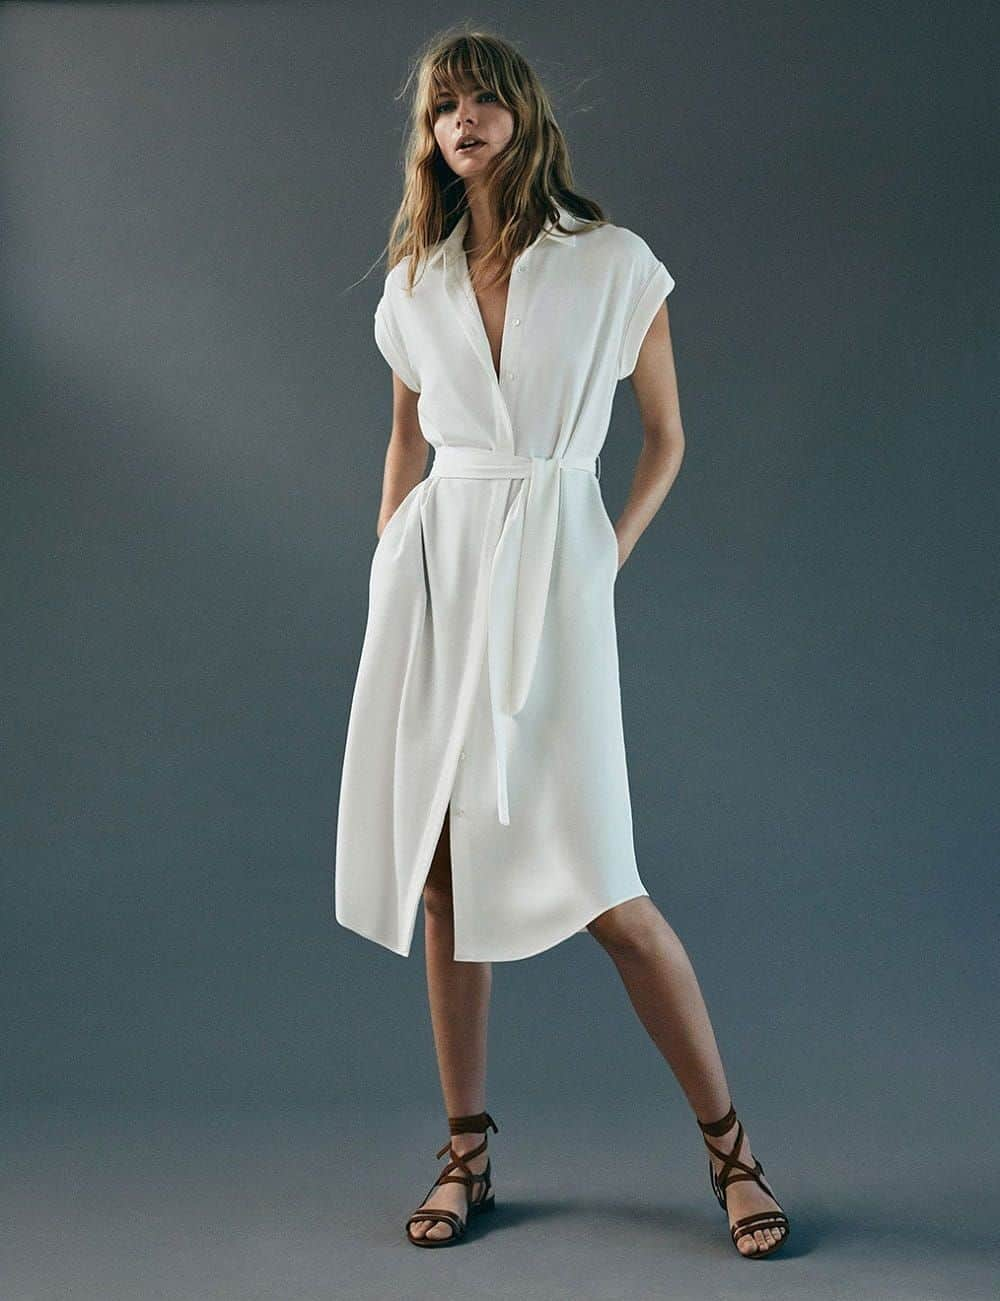 Massimo Dutti simple white dress